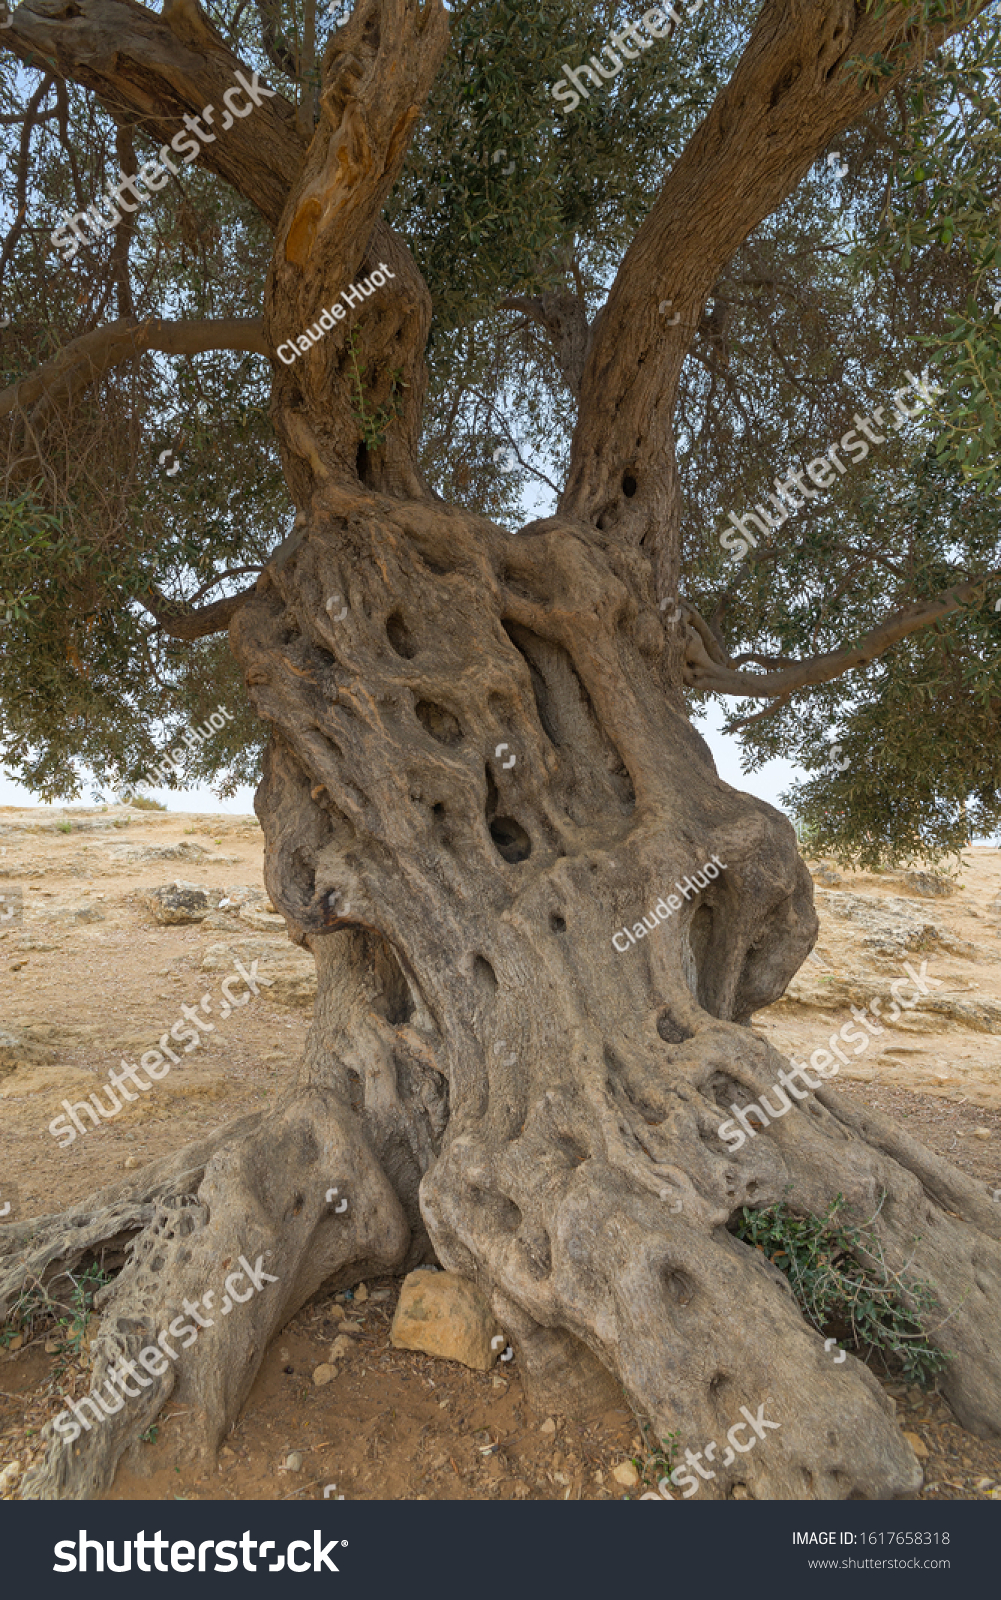 Old olive tree (Olea europaea) on the archaeological site of the Valley of the Temples in Agrigento, Sicily, Italy. The age of this tree is many centuries and could be 1,000 years old.